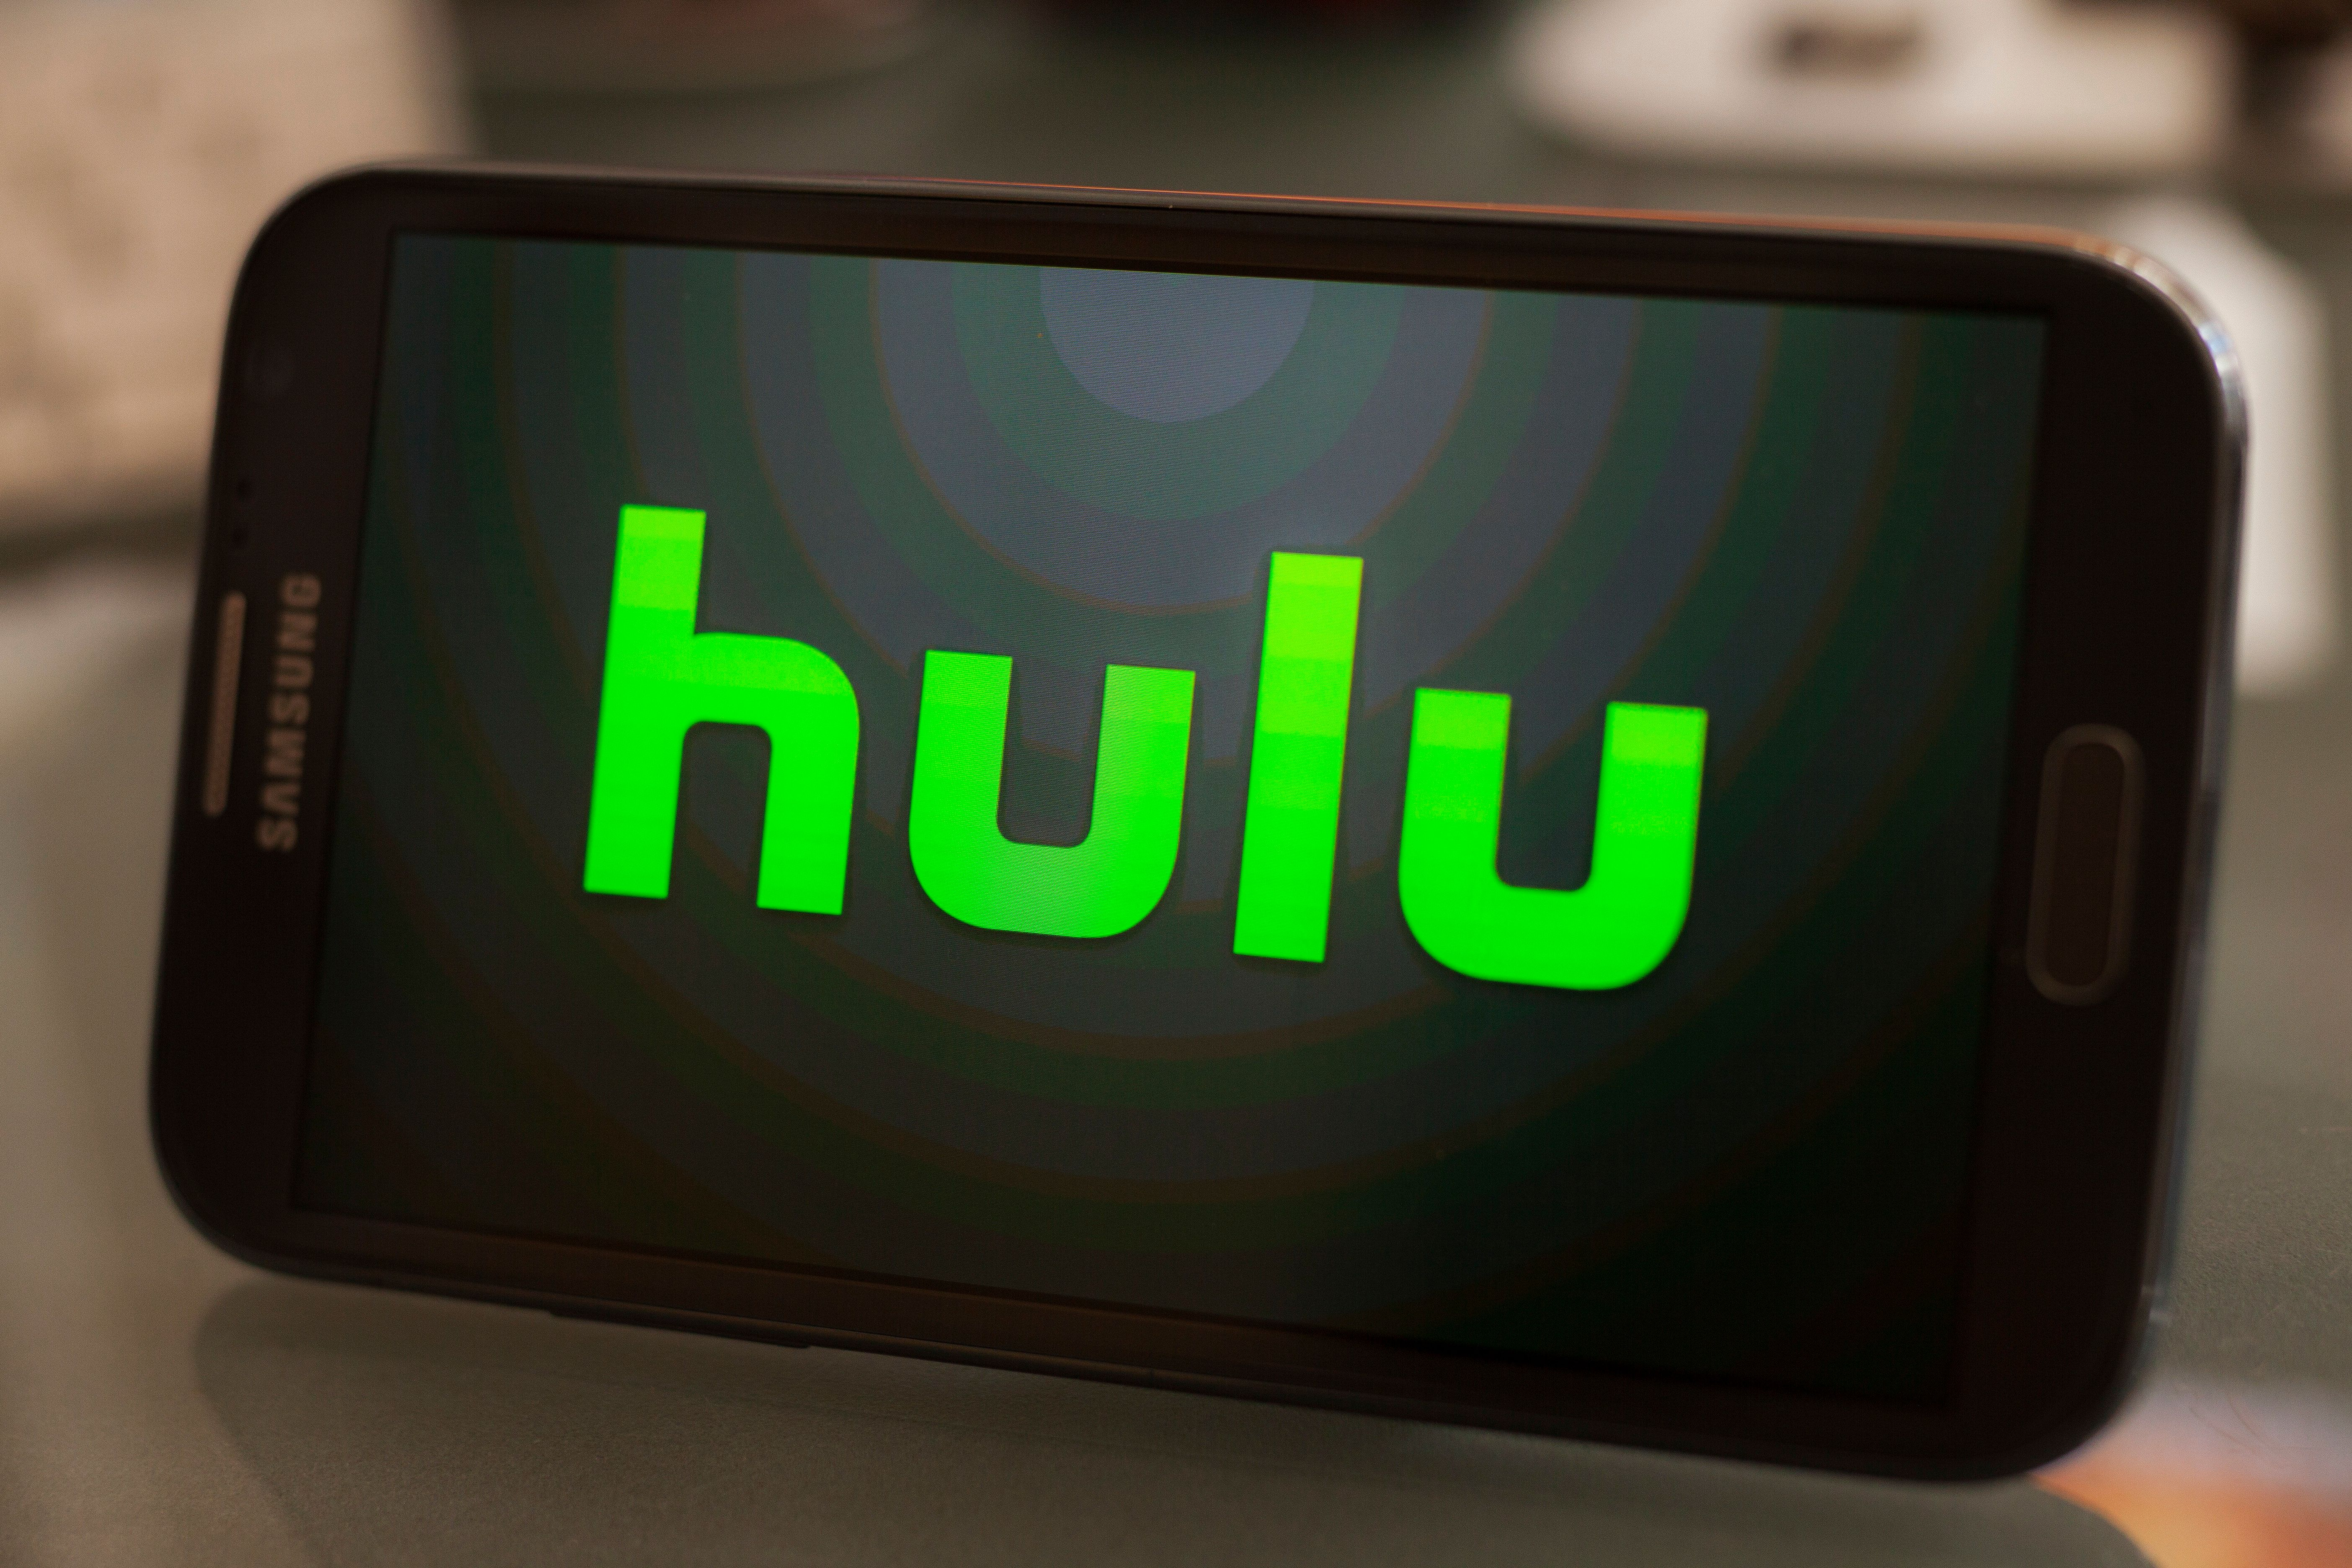 Hulu logo on a smartphone. Hulu is an on-demand media streaming company. (Photo by Ted Soqui/Corbis via Getty Images)